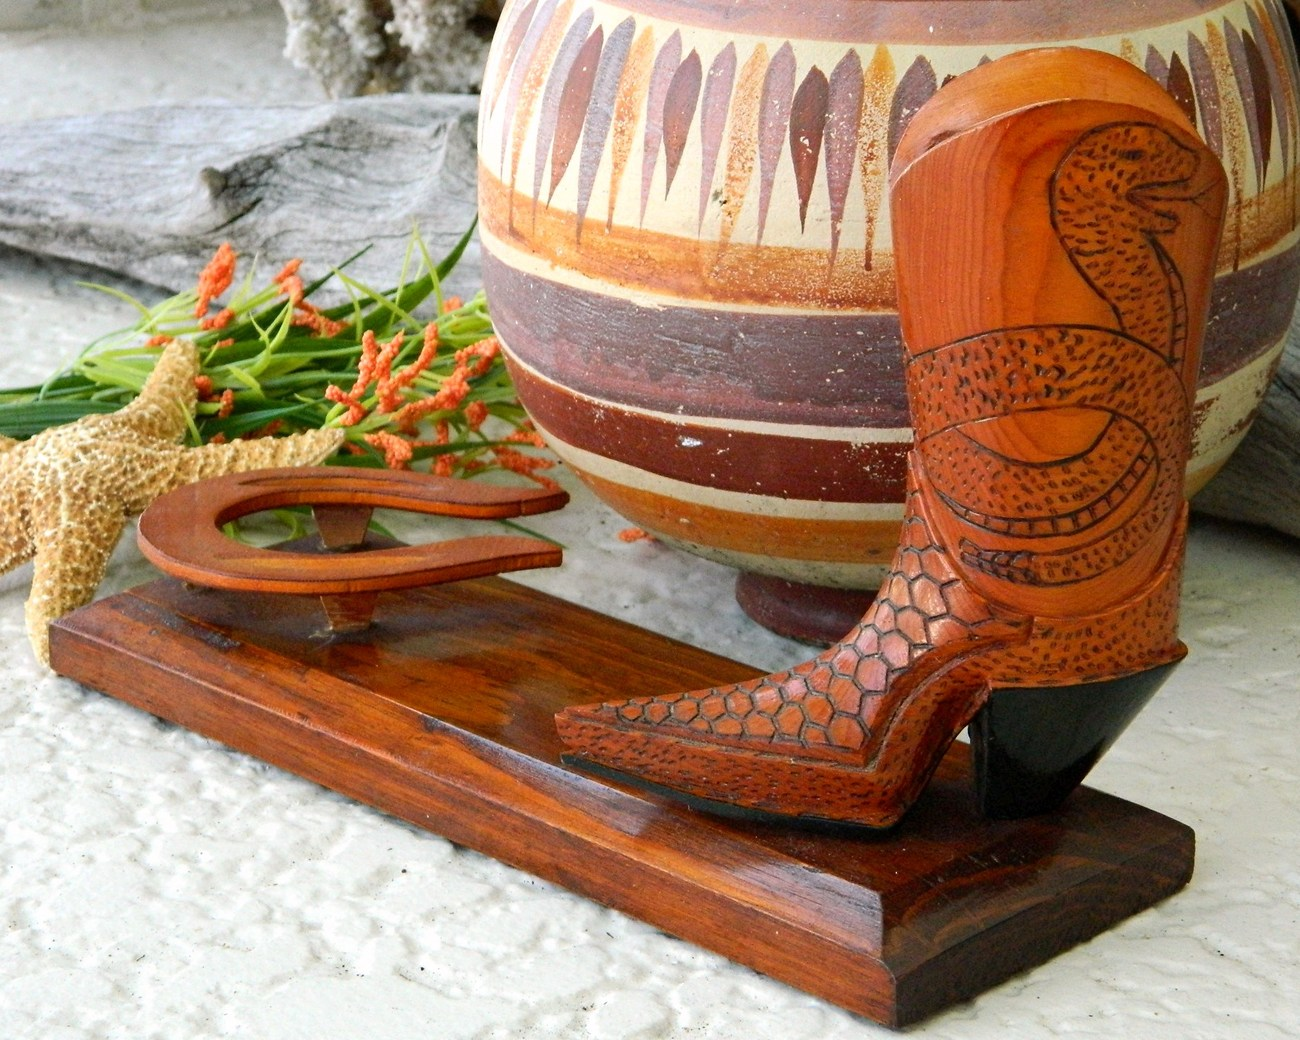 Vintage Cowboy Boot Wood Carving Snakes Horseshoe Folk Art